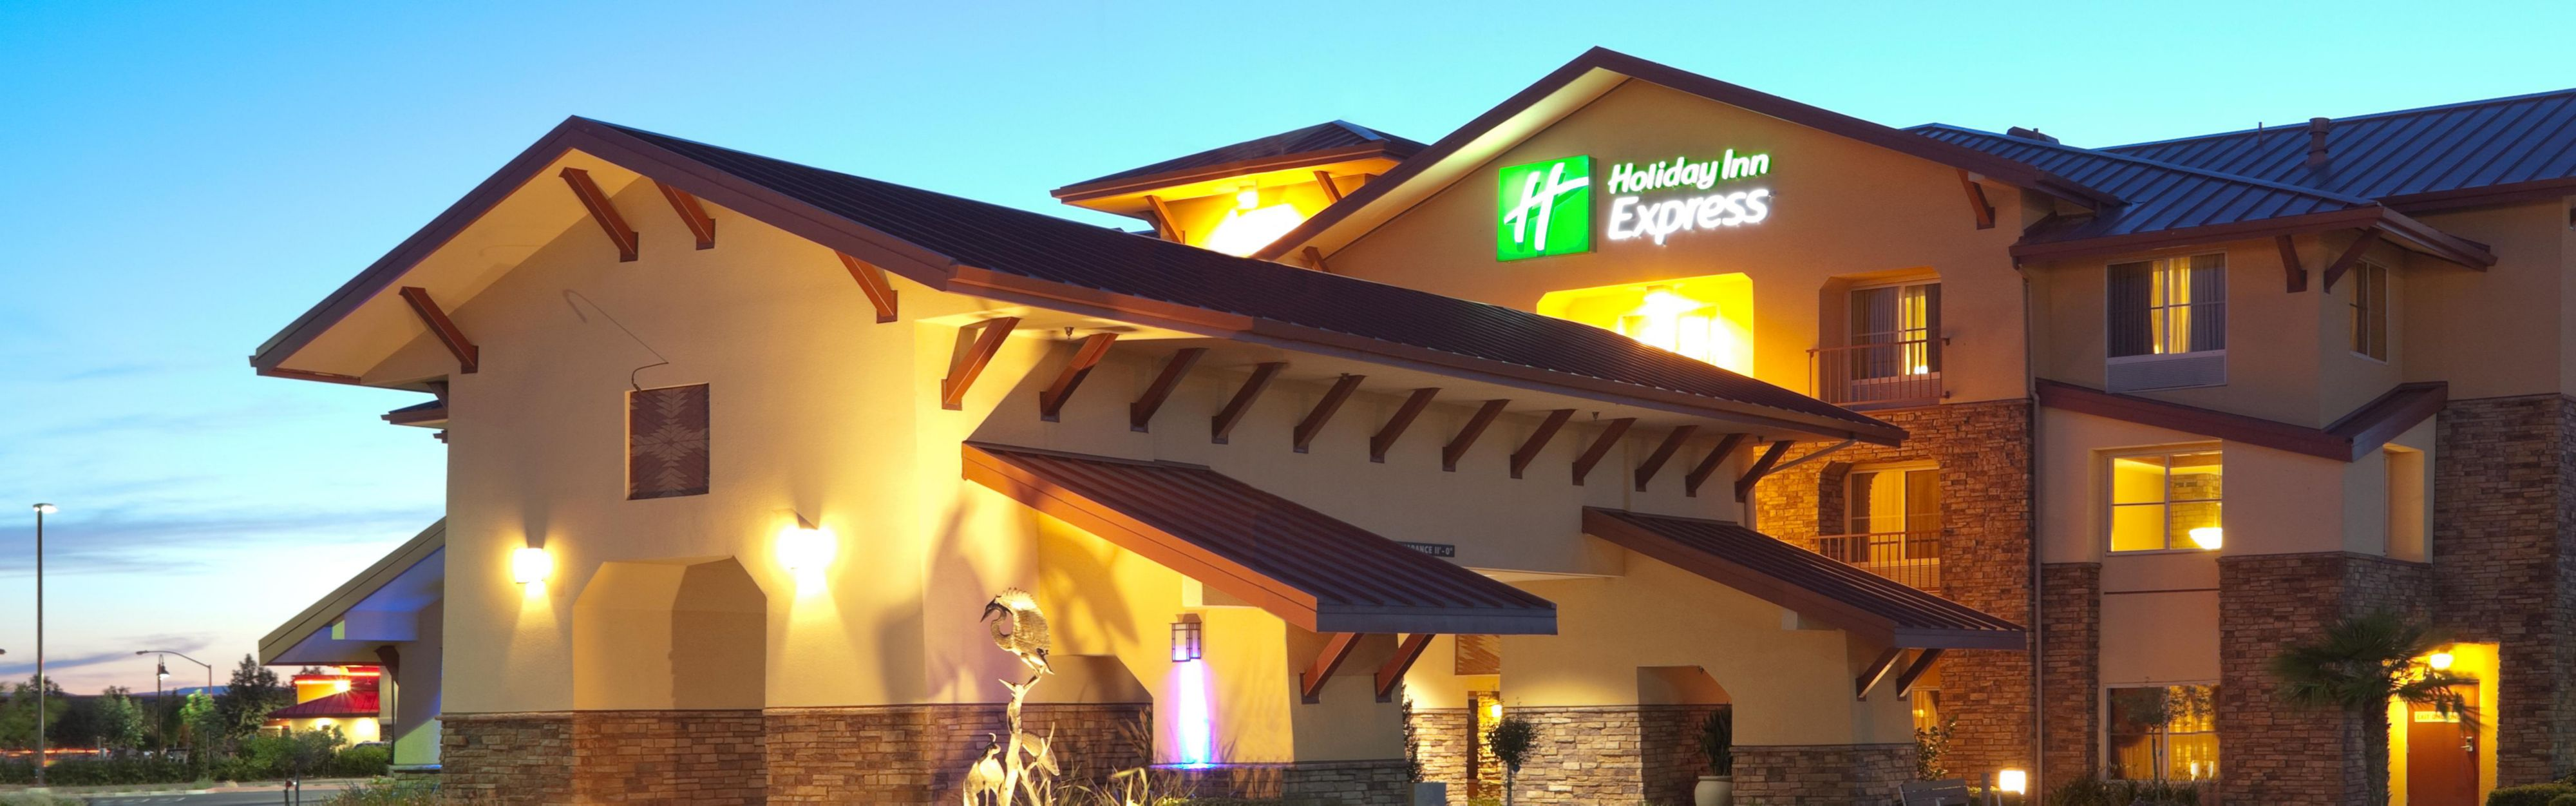 Holiday Inn Express & Suites Turlock-Hwy 99 image 0